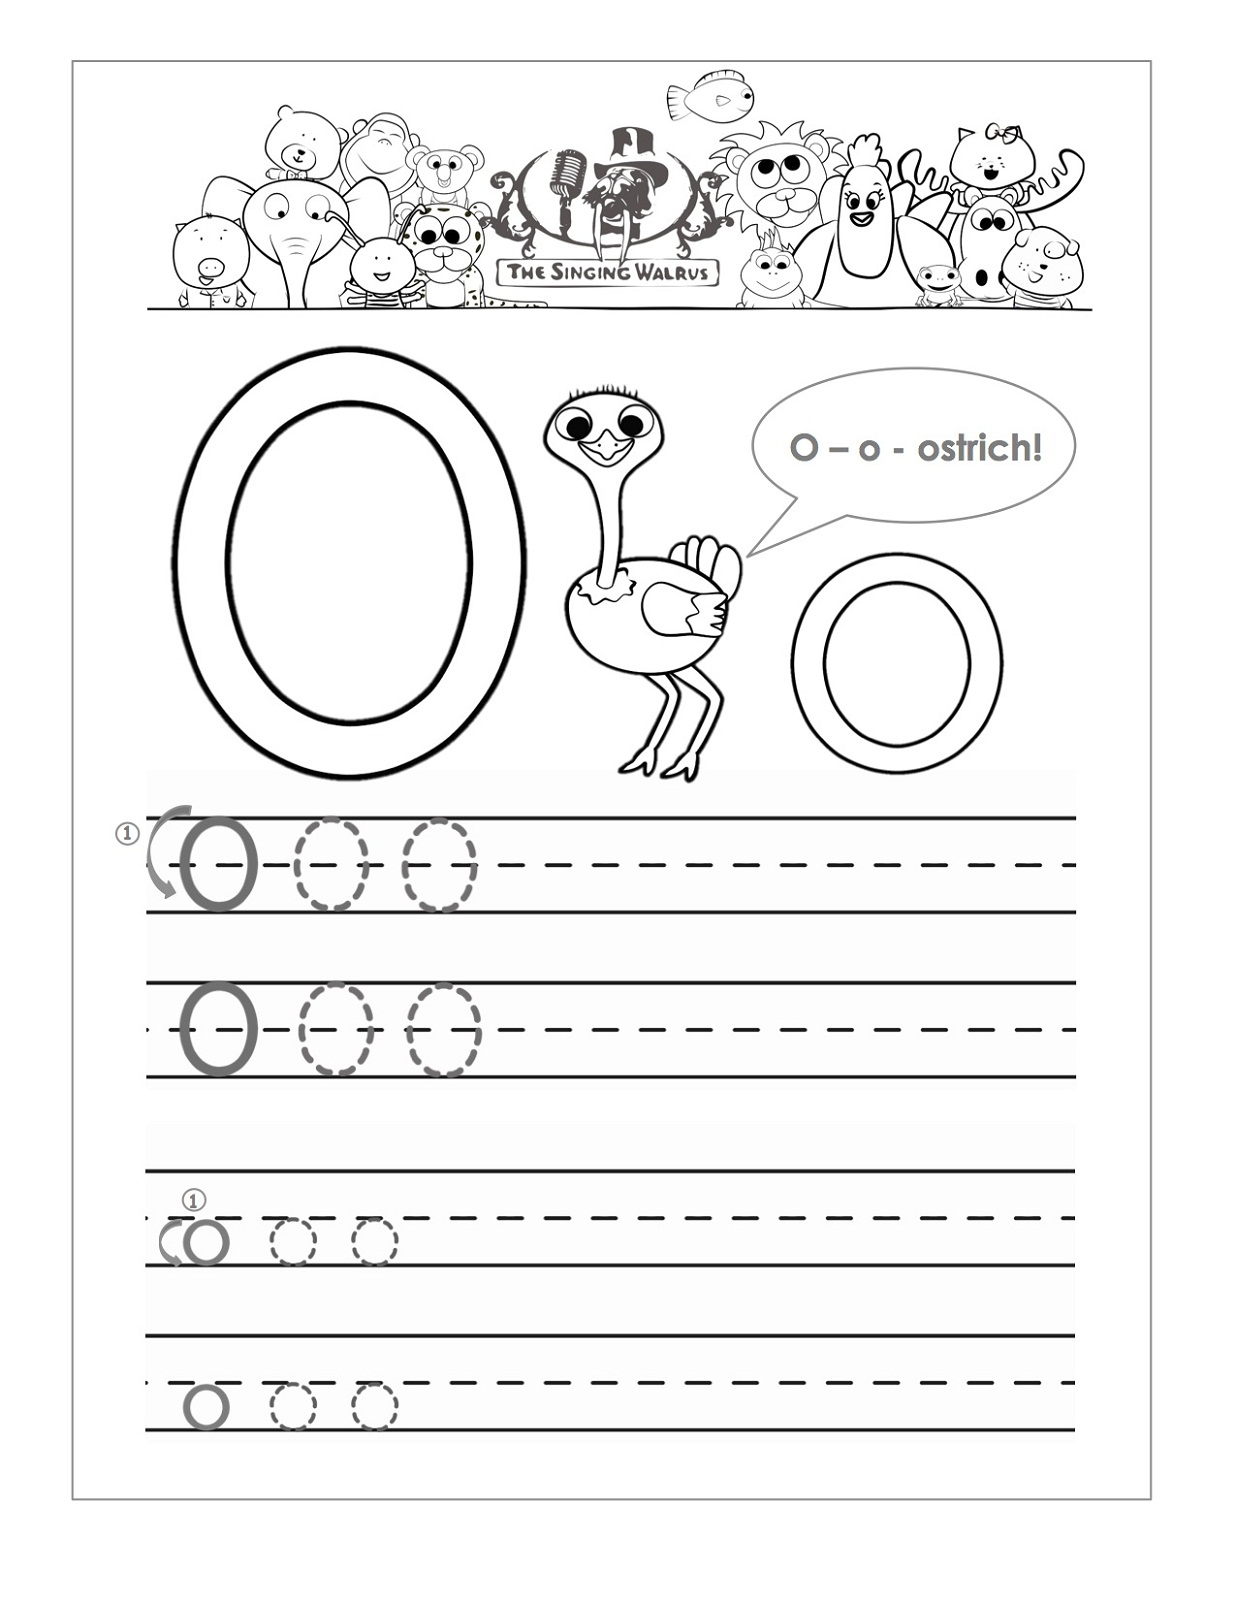 Letter O Worksheets For Preschool | Activity Shelter with Letter O Tracing Worksheets Preschool